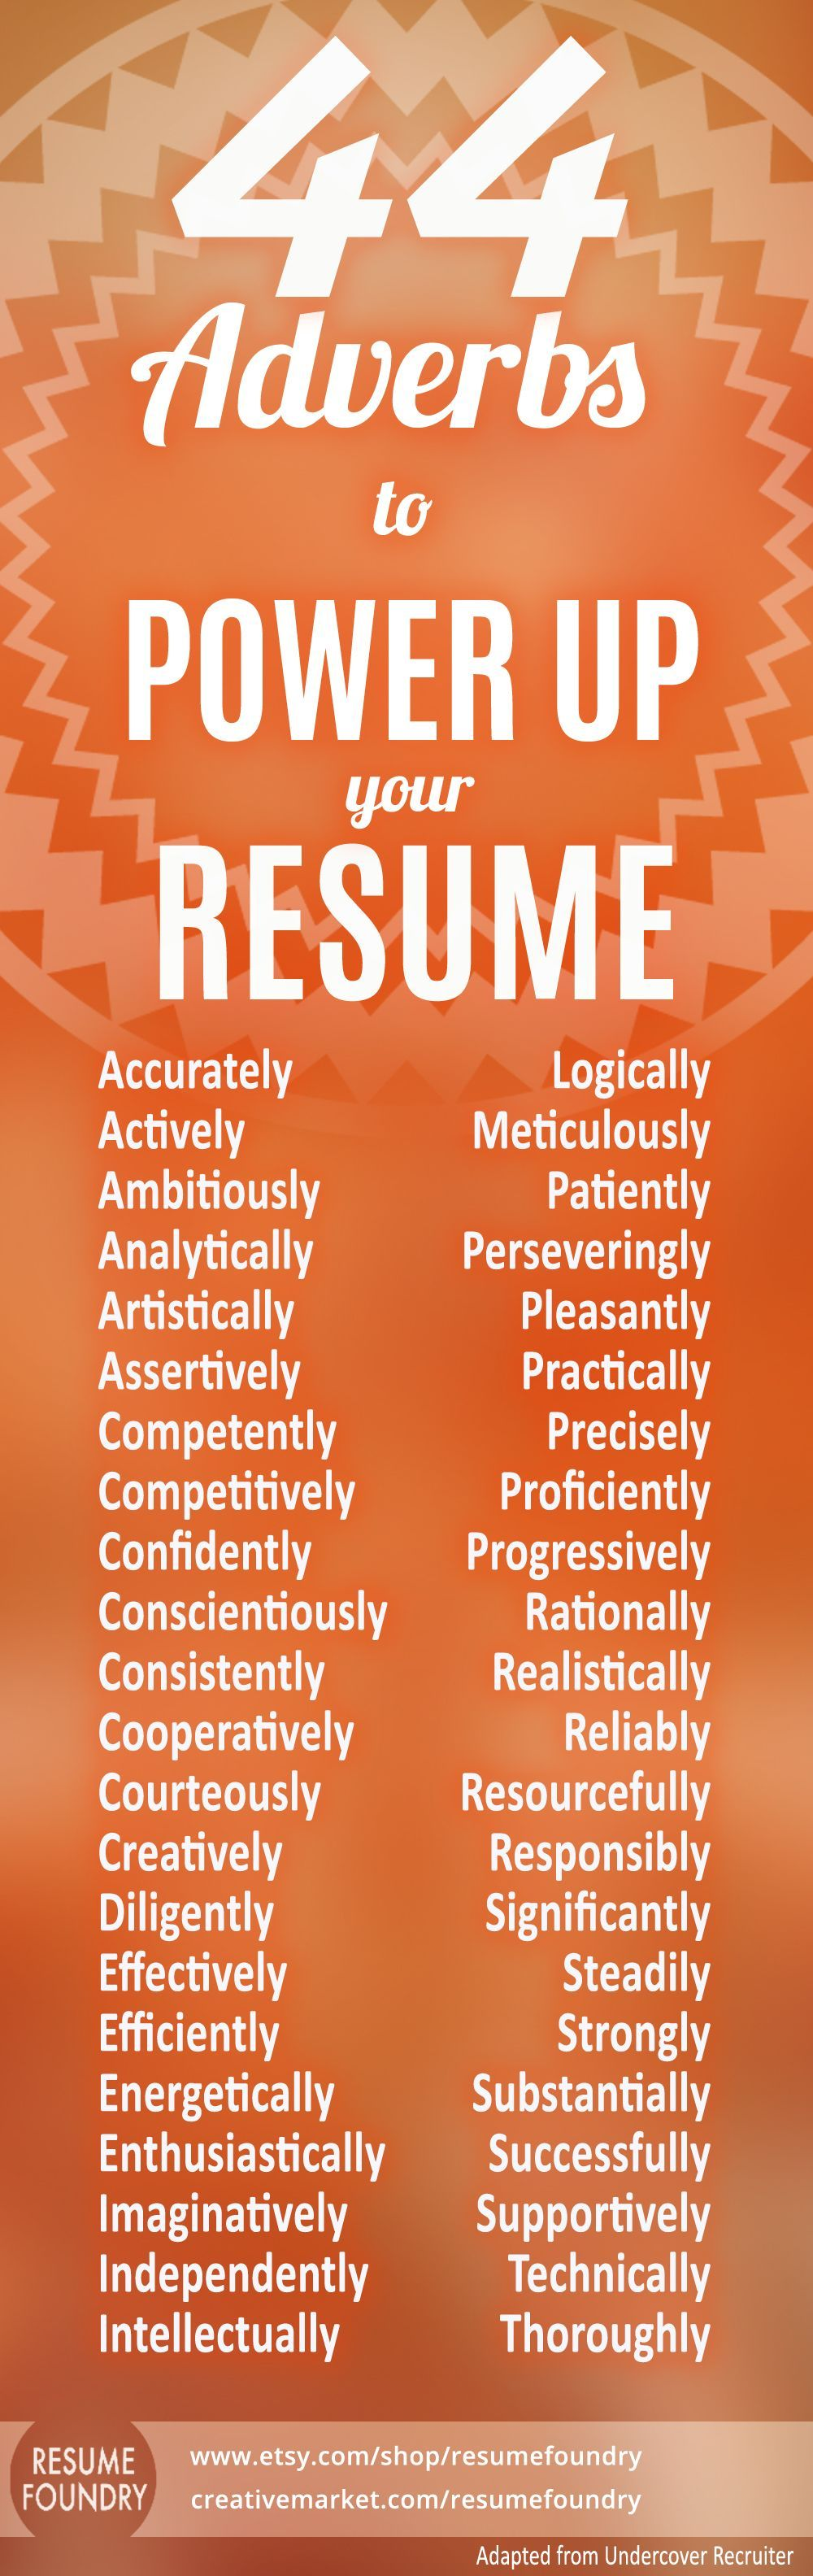 44 Adverbs to PowerUP your Resume Resume tips Resume keywords